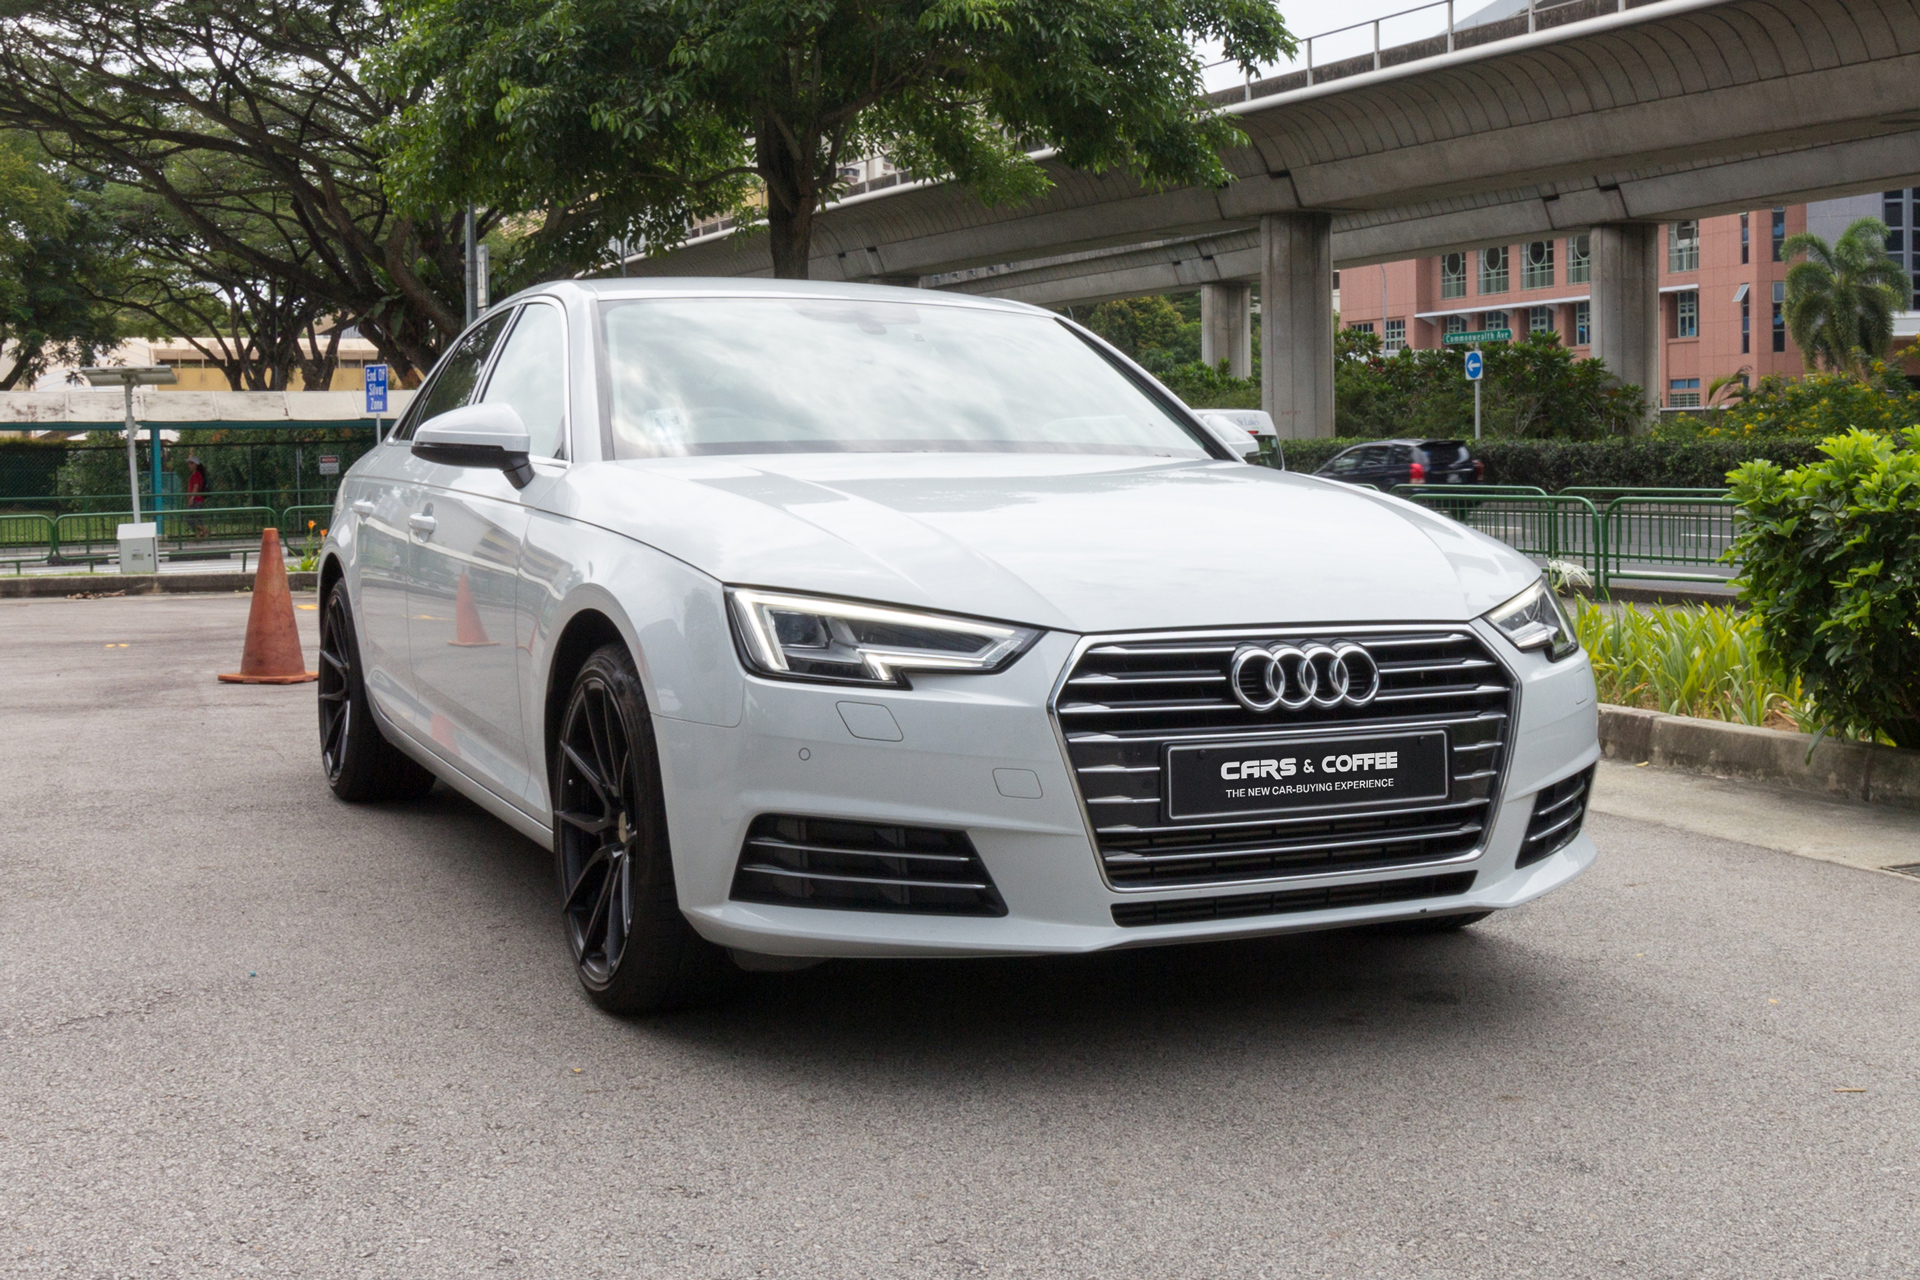 Certified Pre-Owned Audi A4 2.0A TFSI S-tronic   Cars and Coffee Singapore